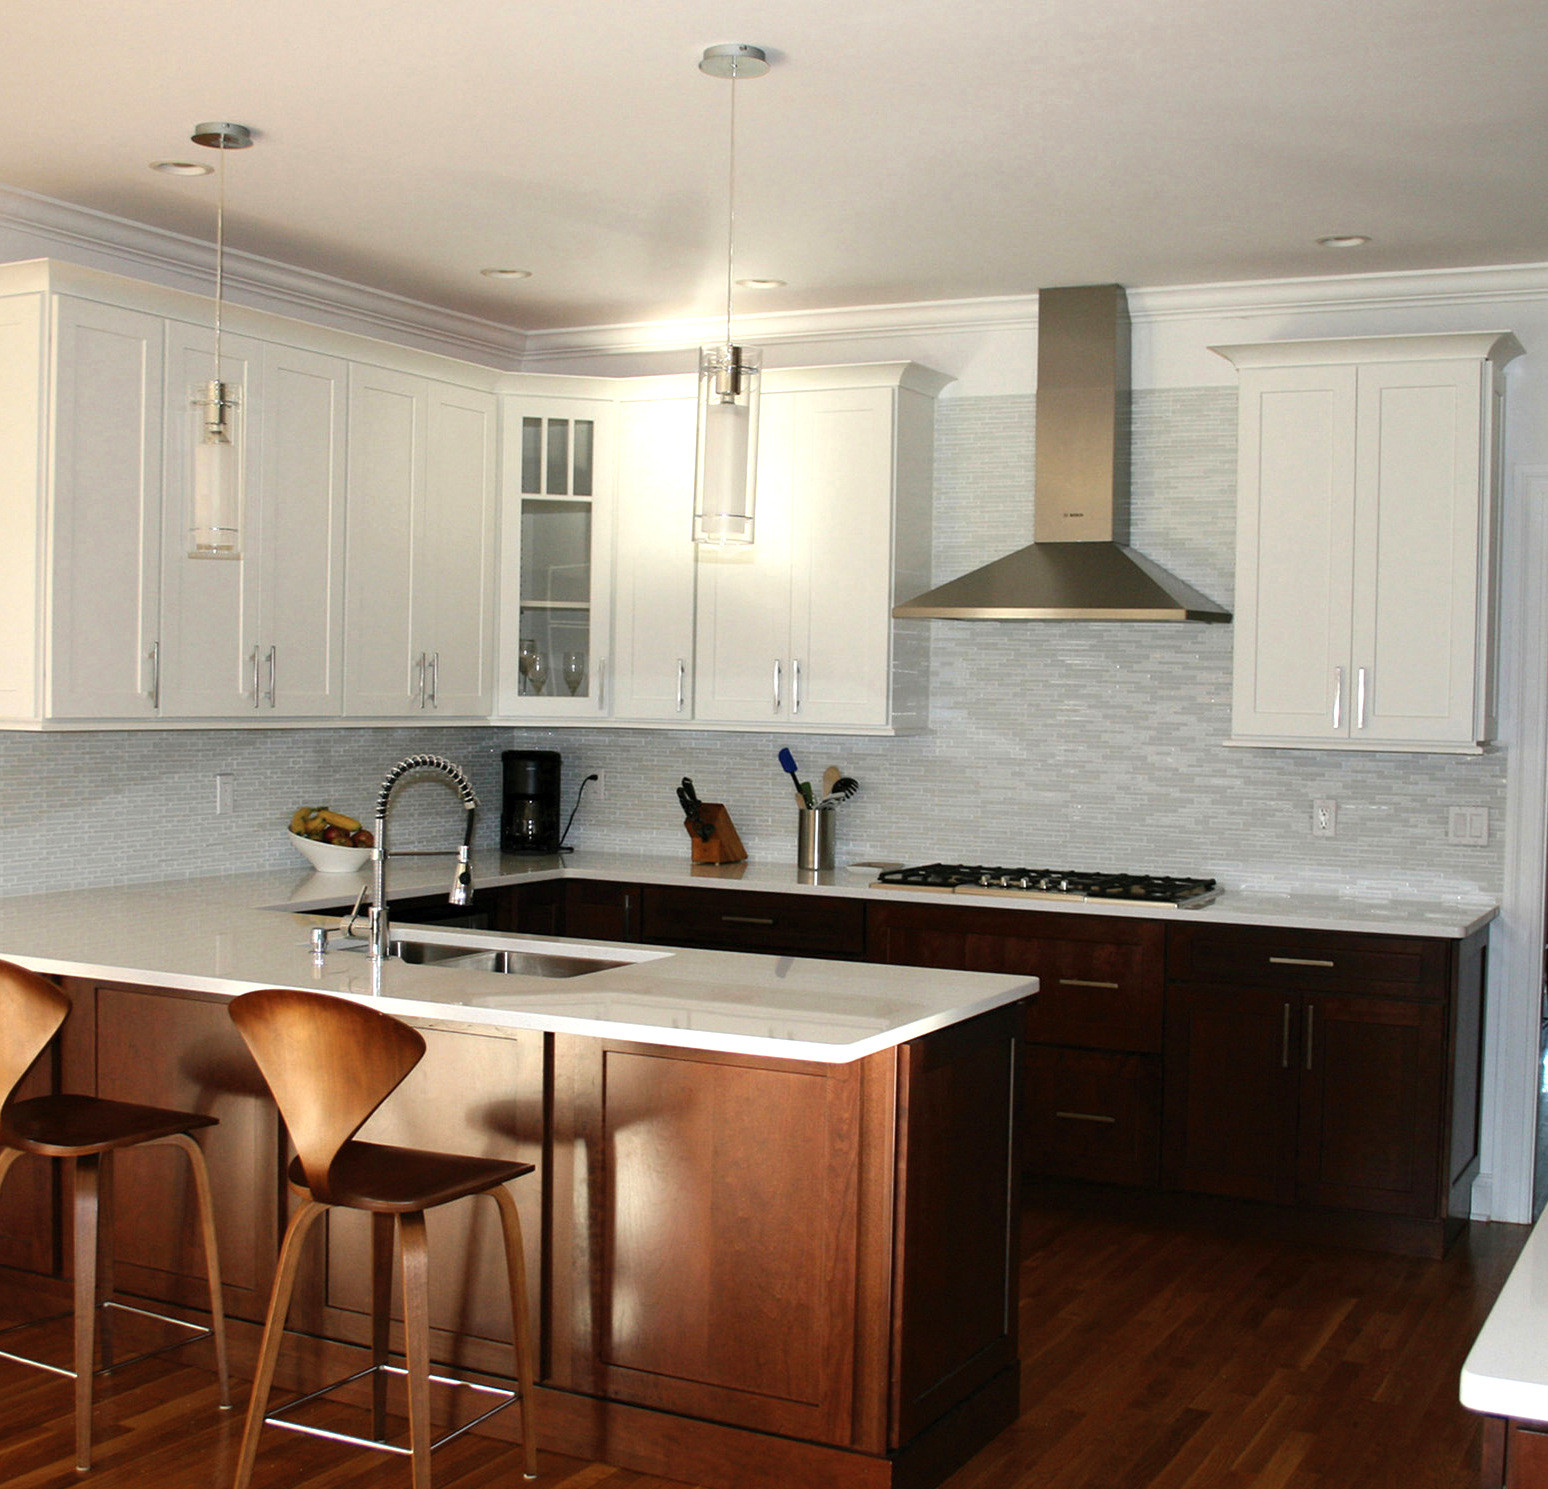 Best ideas about Upper Kitchen Cabinets . Save or Pin Kitchen Remodel Where to Begin Now.